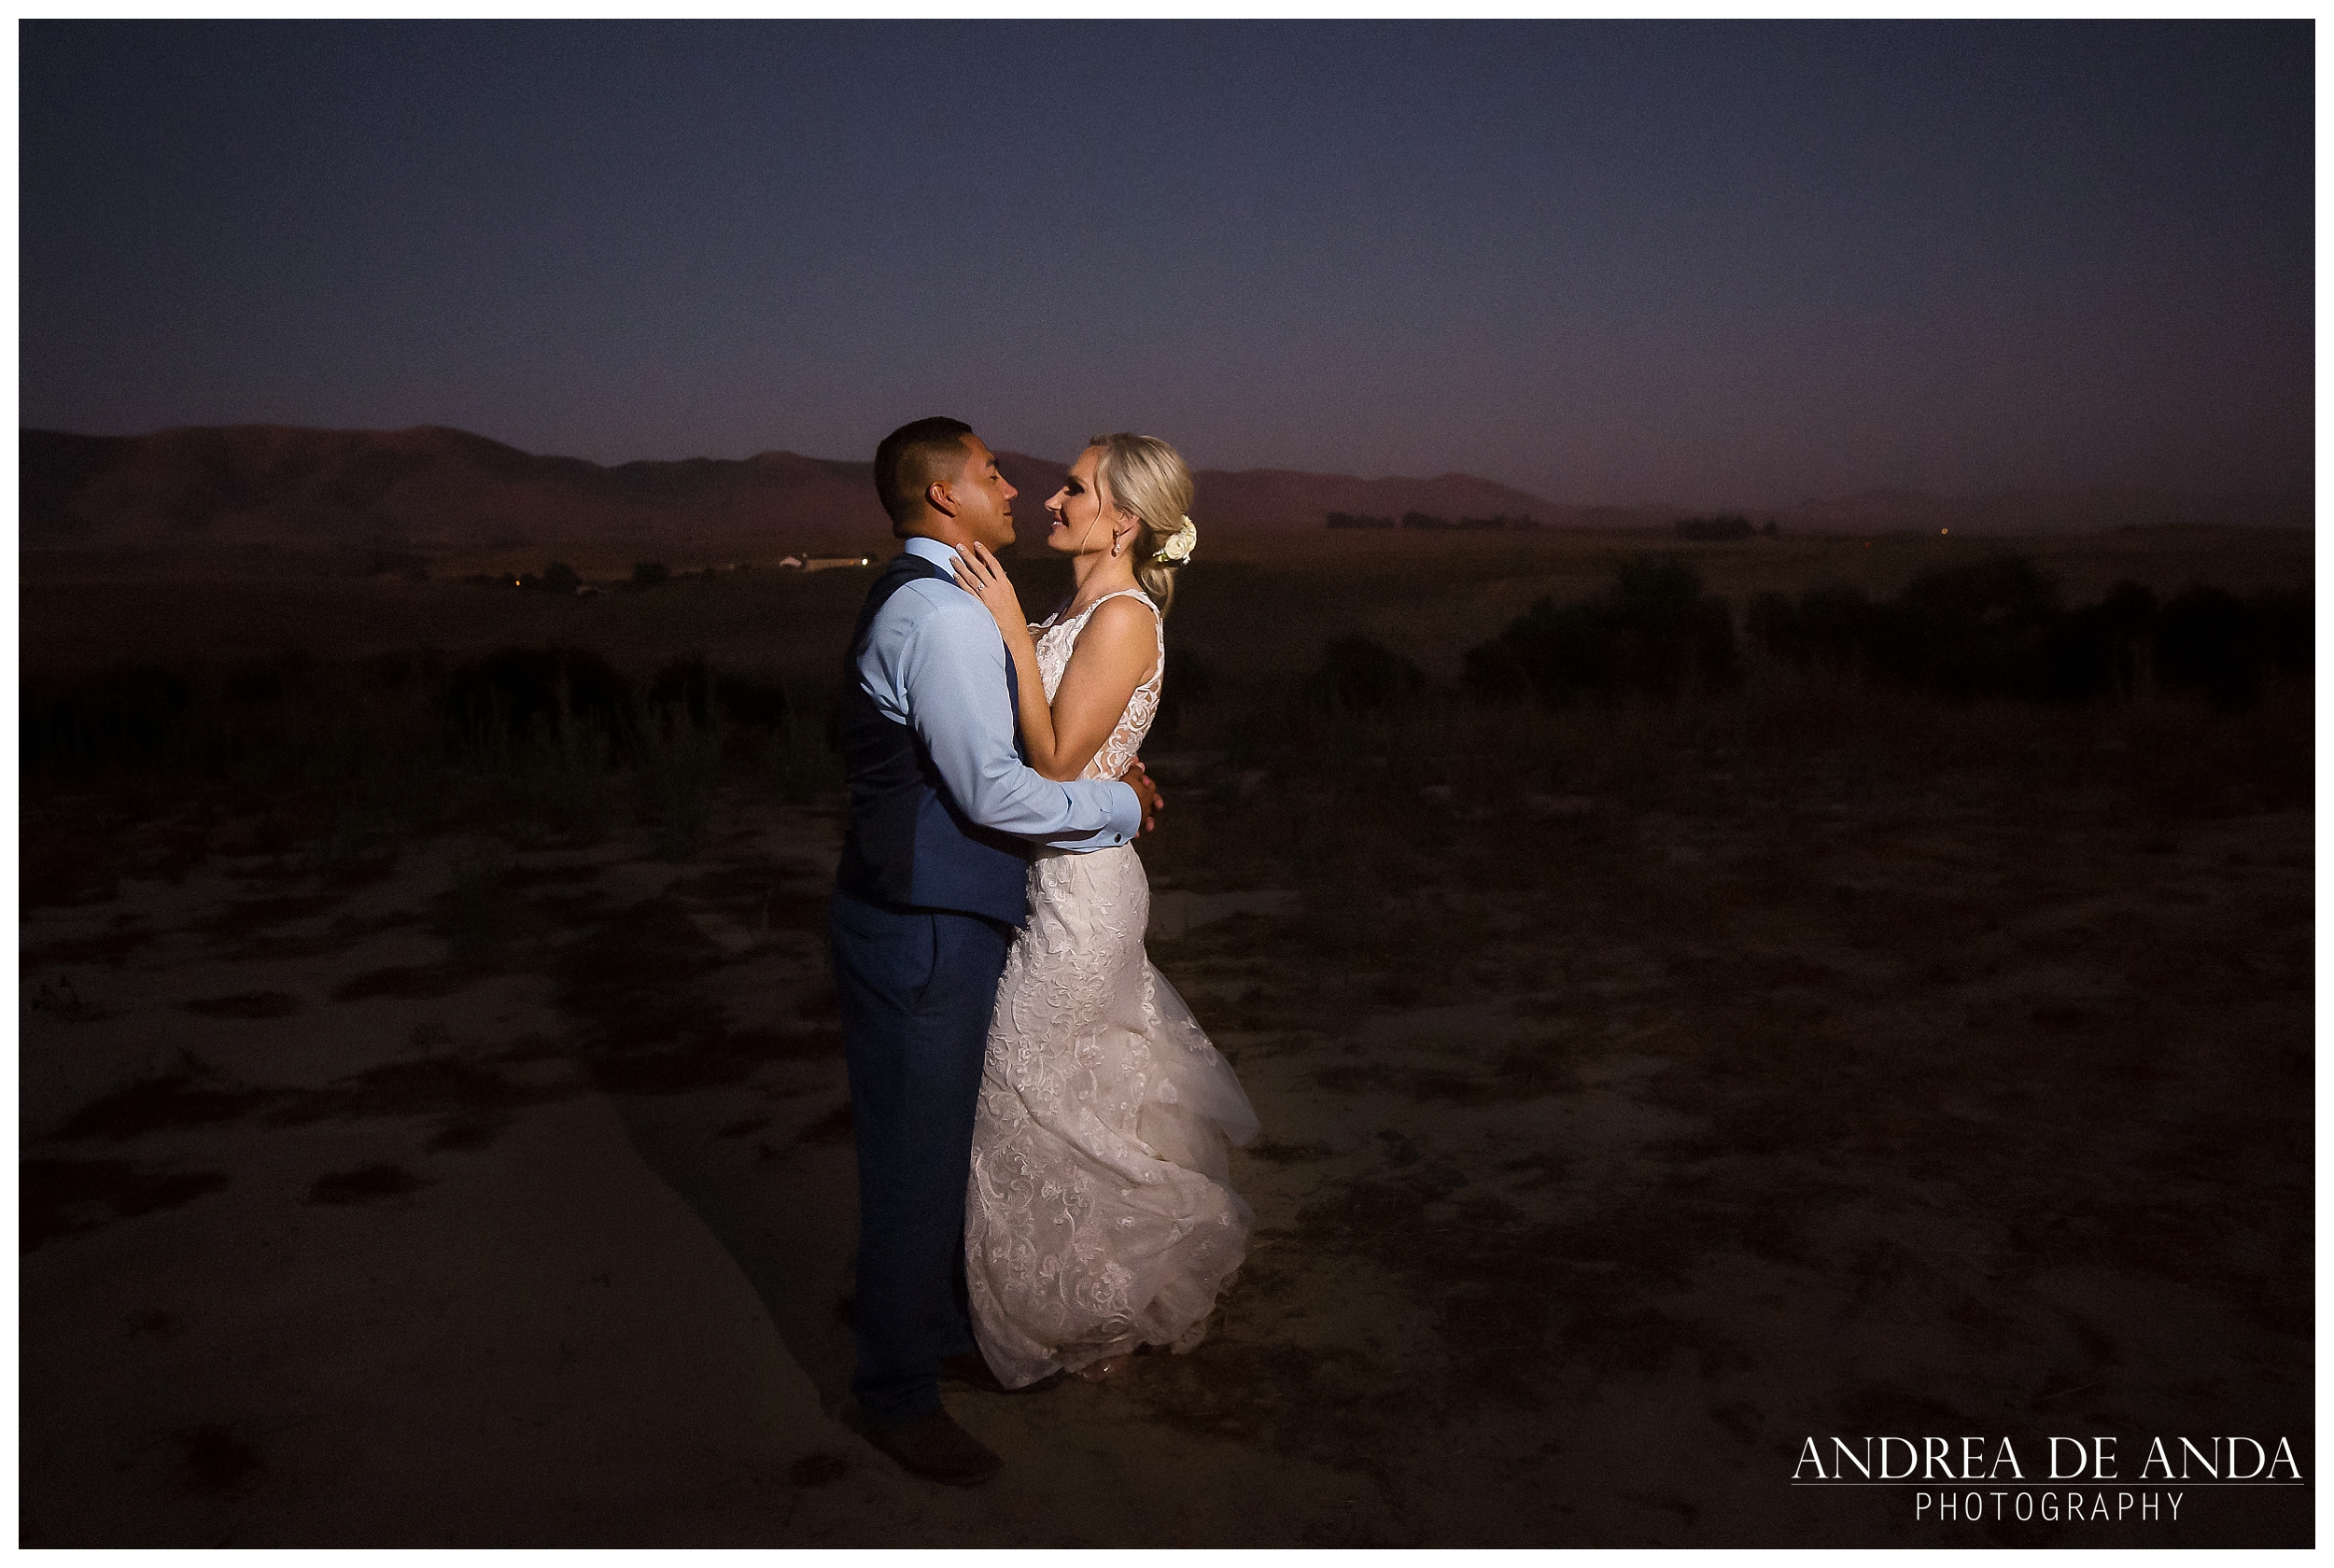 San Jose Wedding Photograhy by Andrea de Anda Photography__0027.jpg